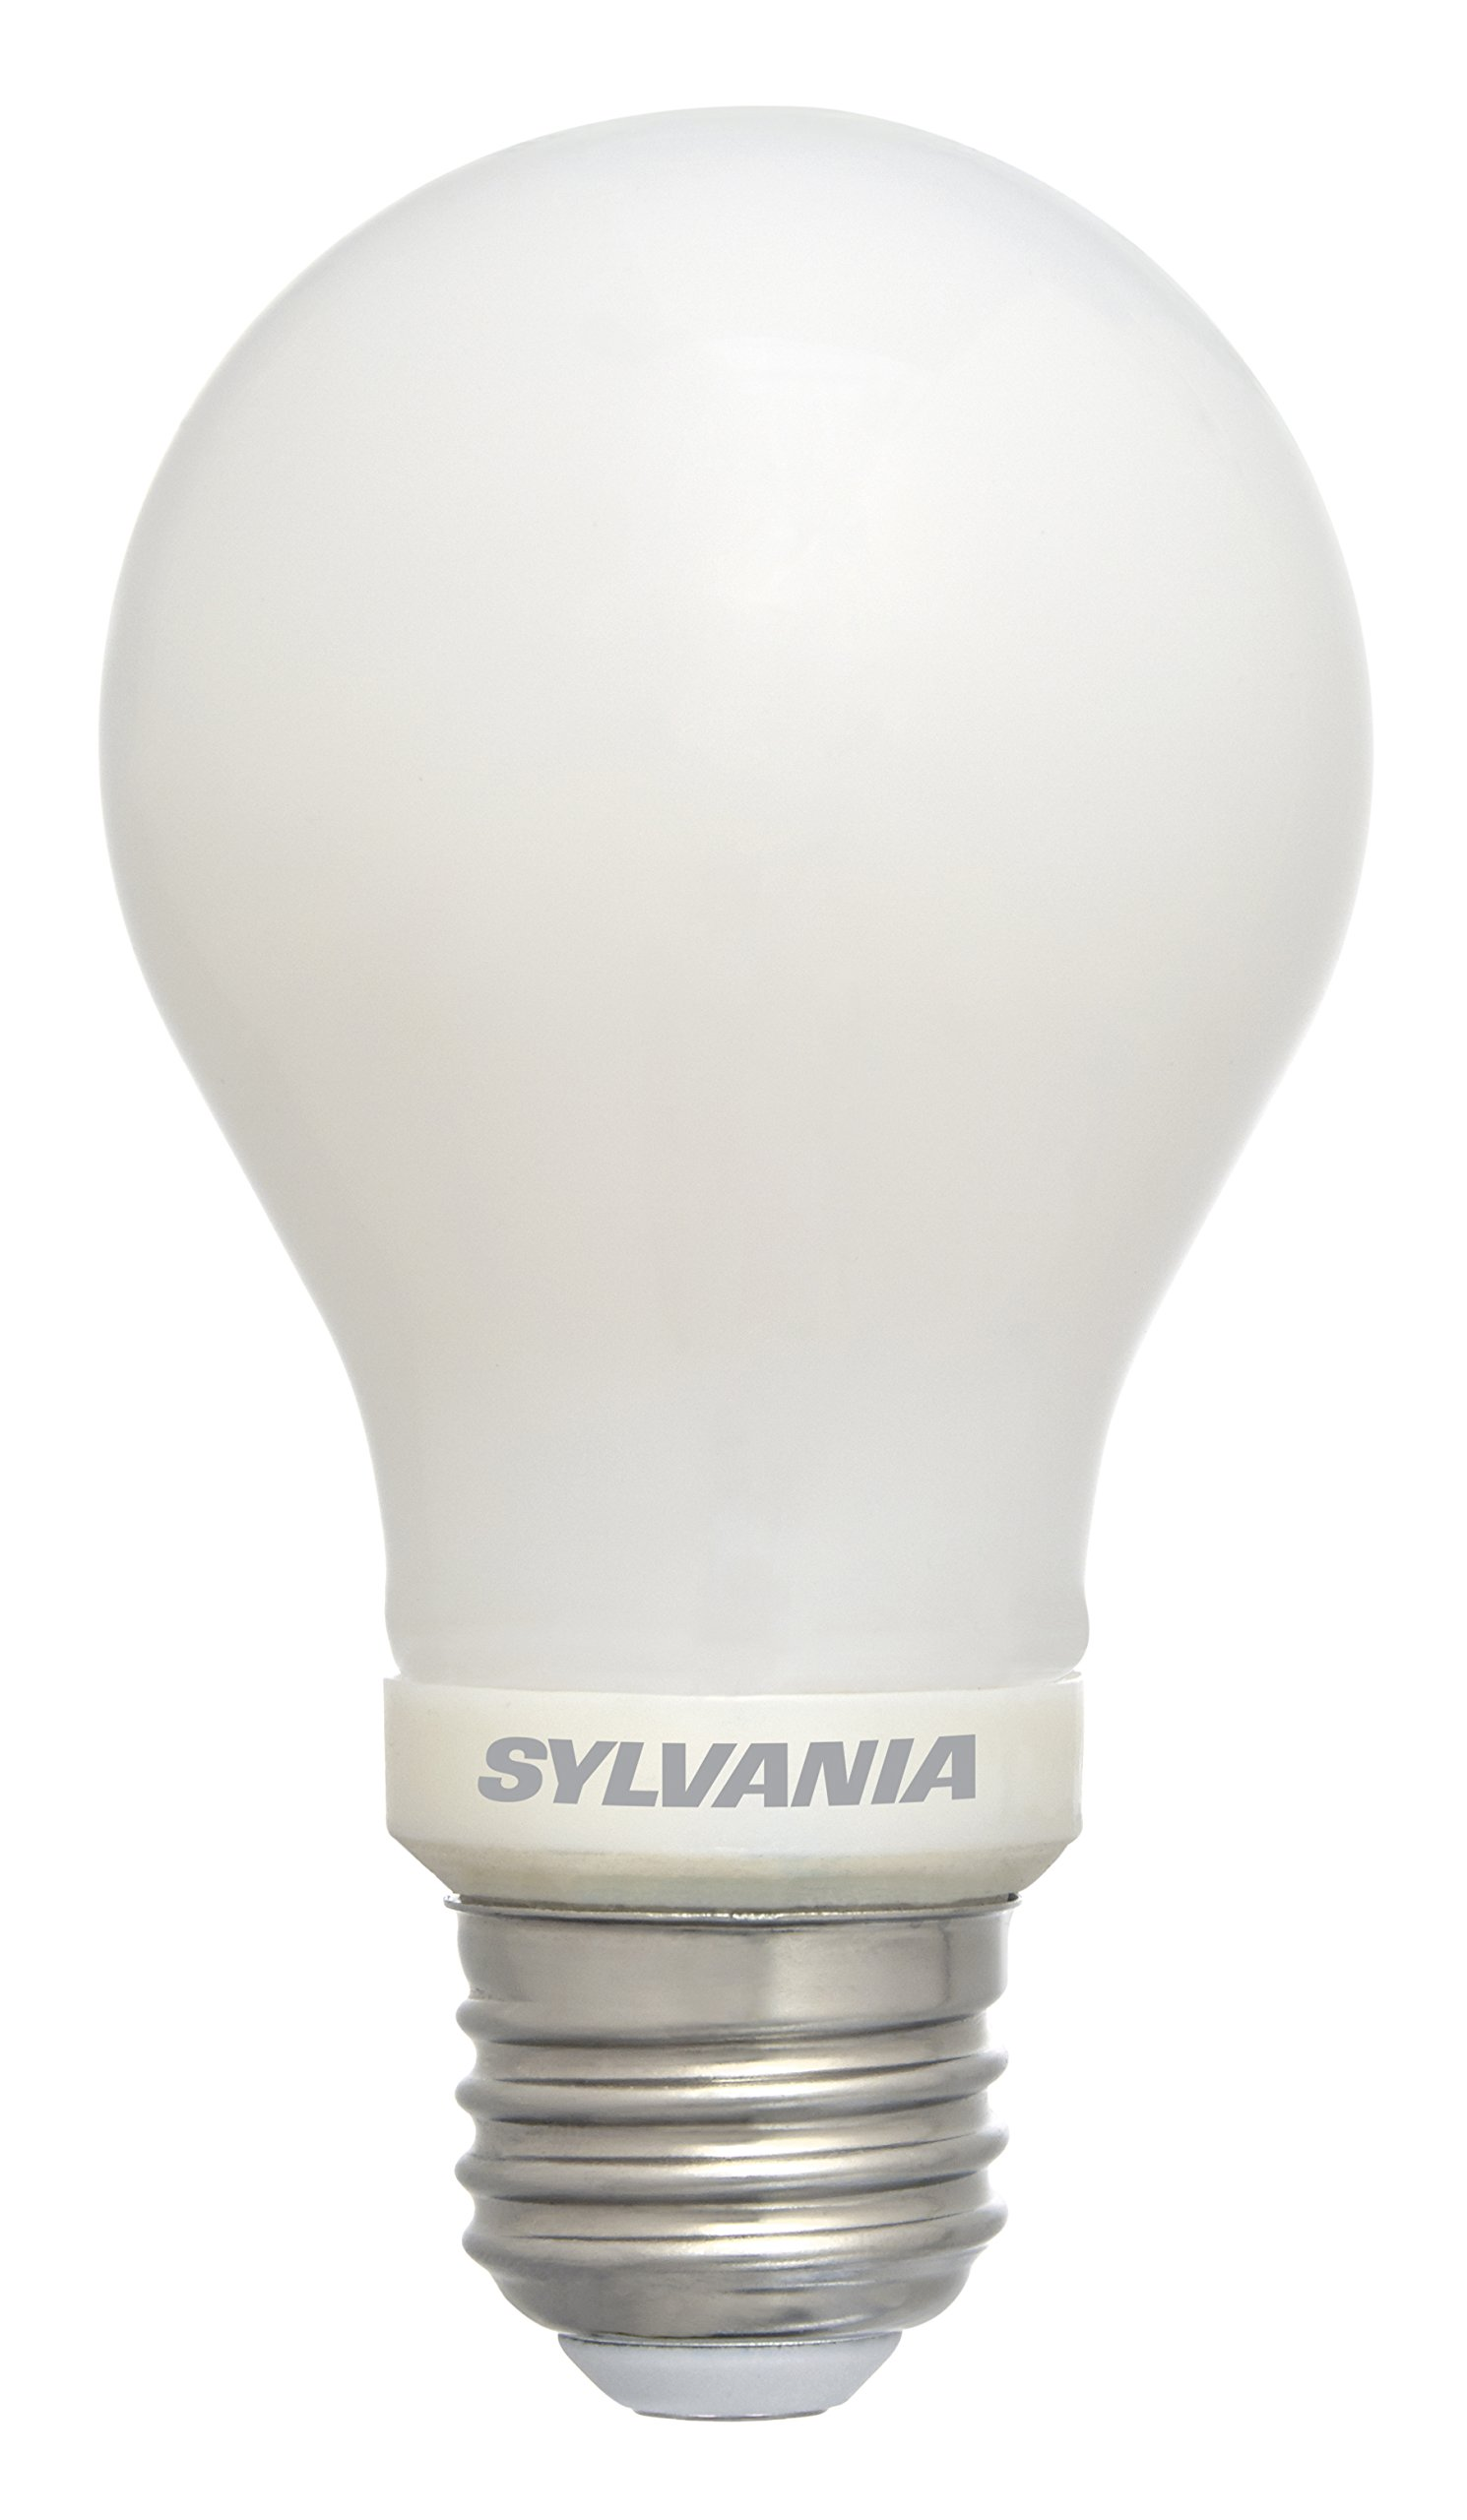 SYLVANIA 75 Watt Equivalent, A19 LED Light Bulbs, Non-Dimmable, Daylight Color 5000K, Made in the USA with US and Global Parts, 4 Pack